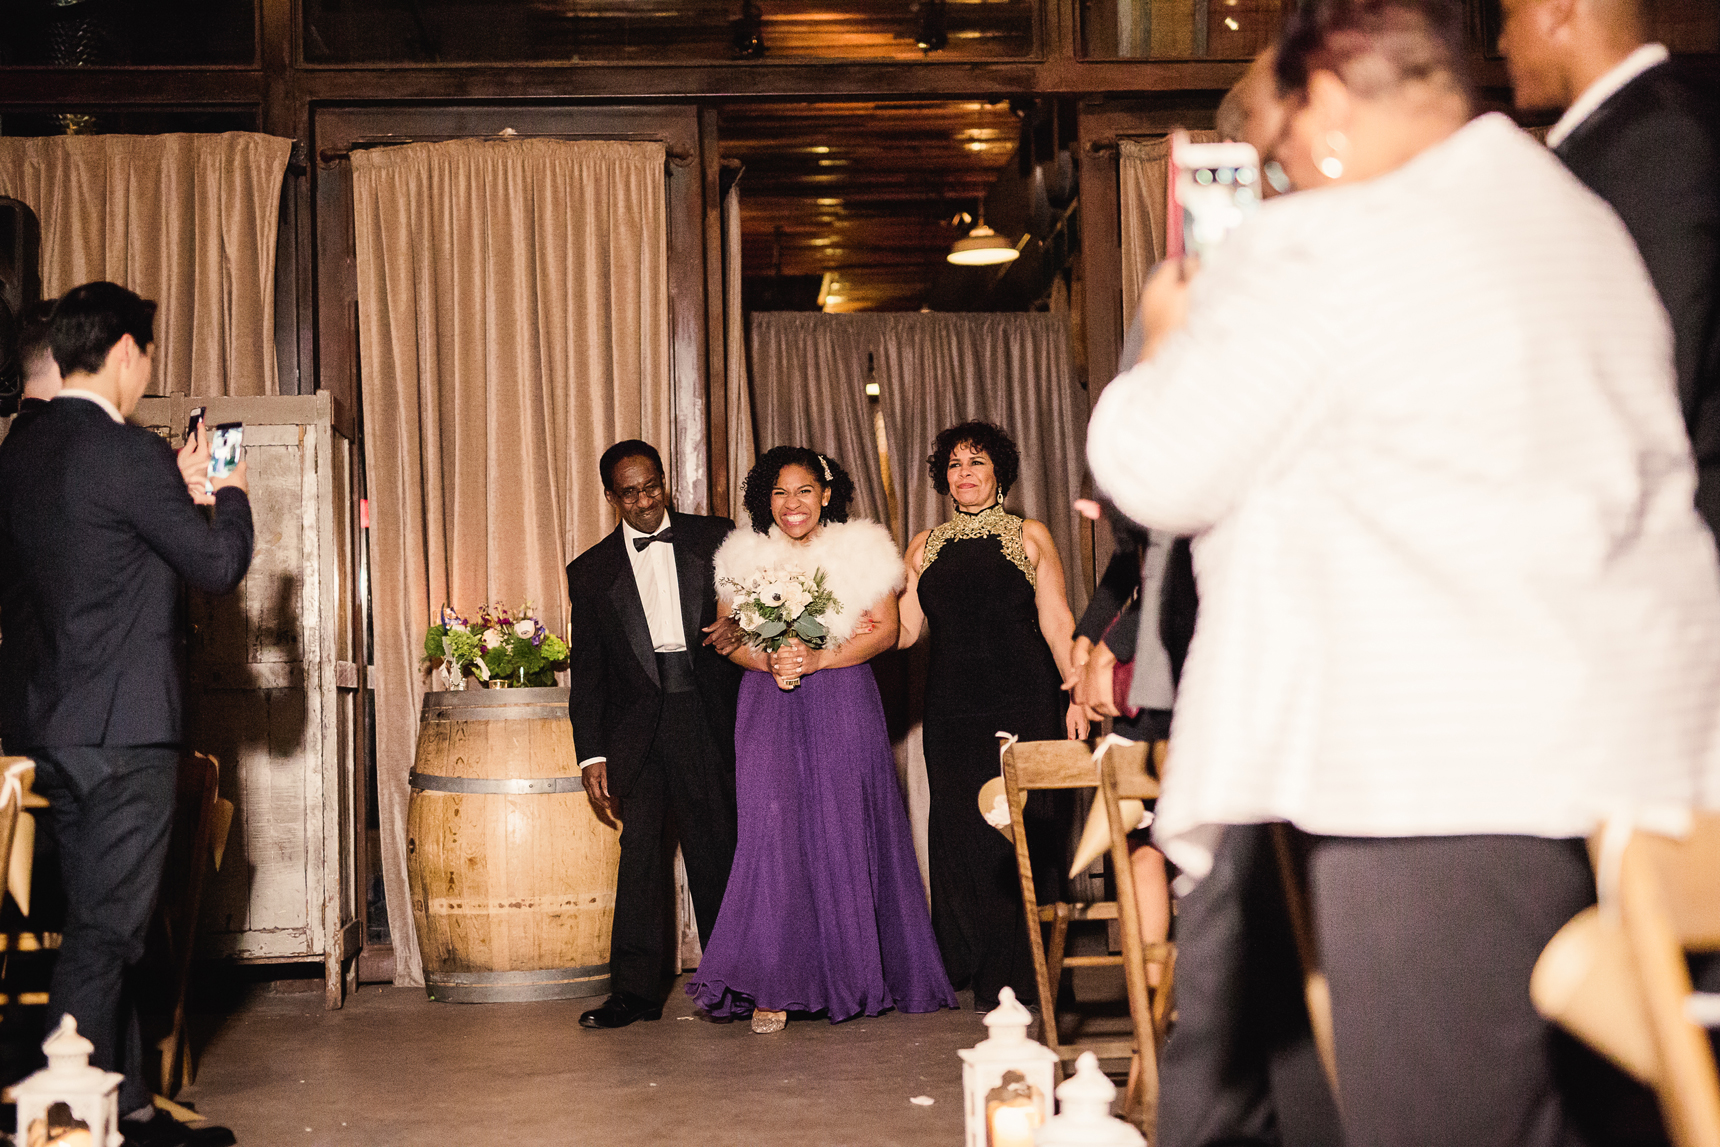 KP_BrooklynWinery_Wedding_NewYork_Photographer077.jpg